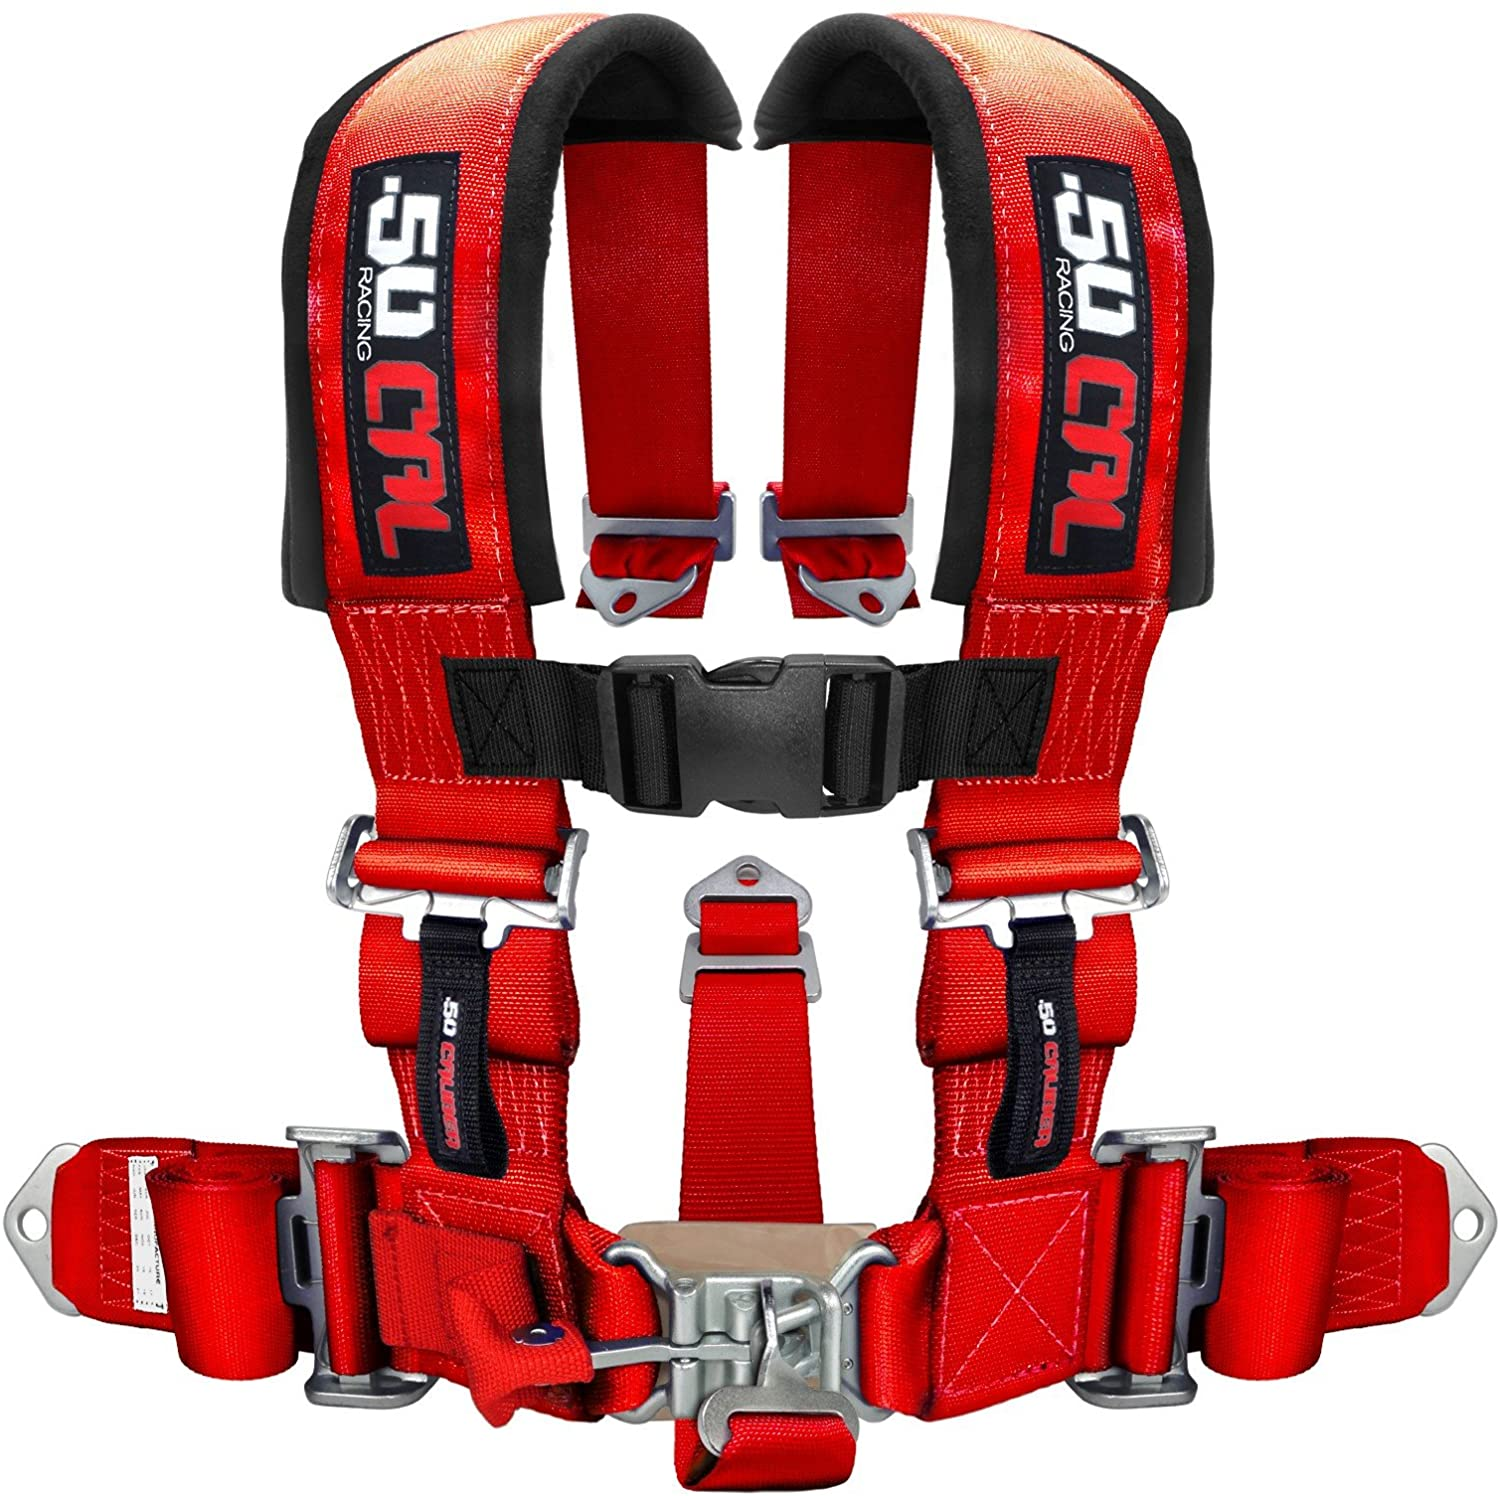 50 Caliber Racing Red 5 Point Harness with 3